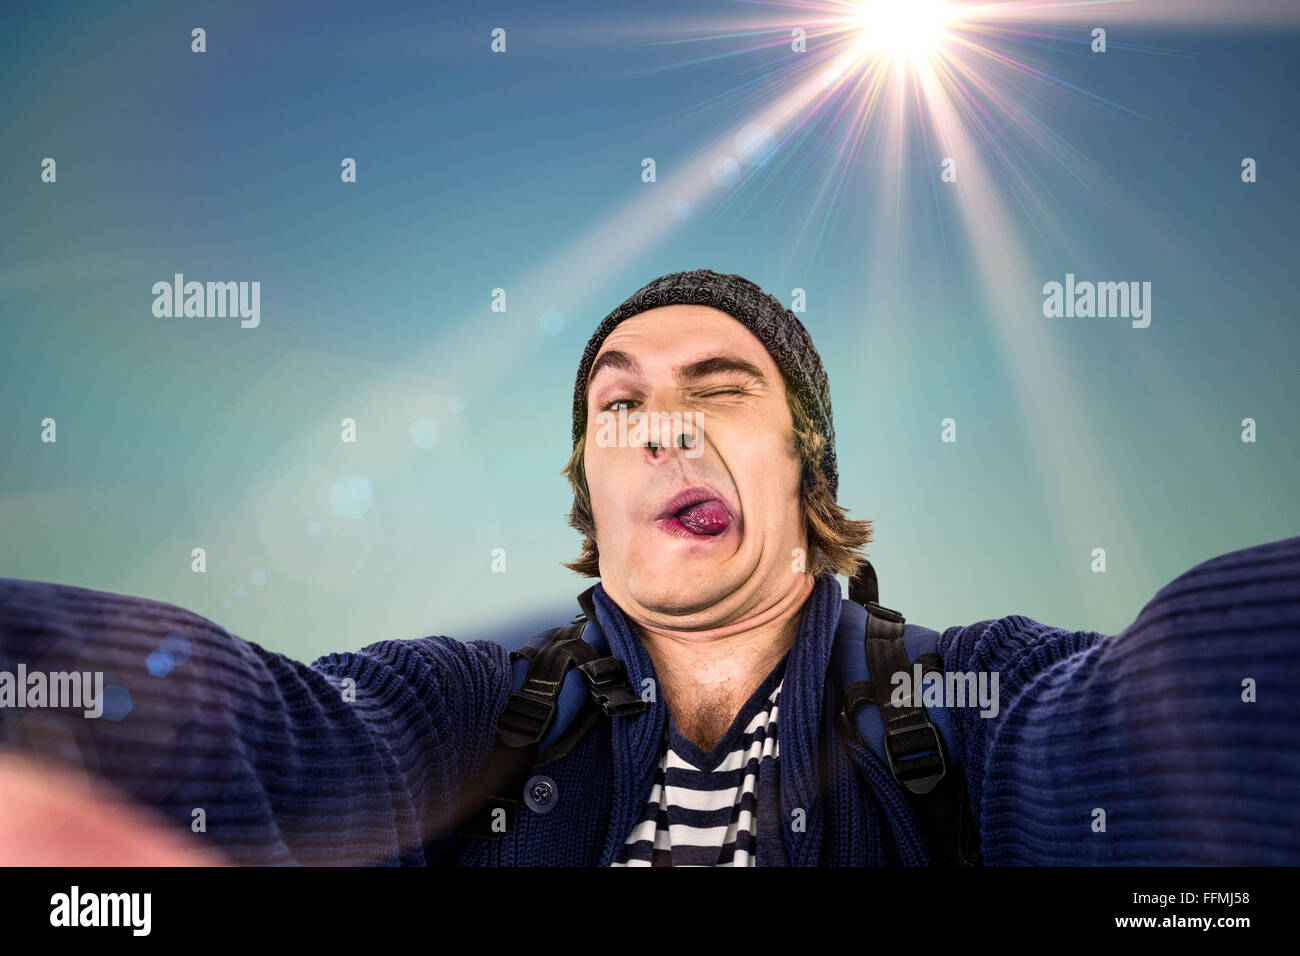 Composite image of hipster holding camera and grimacing - Stock Image